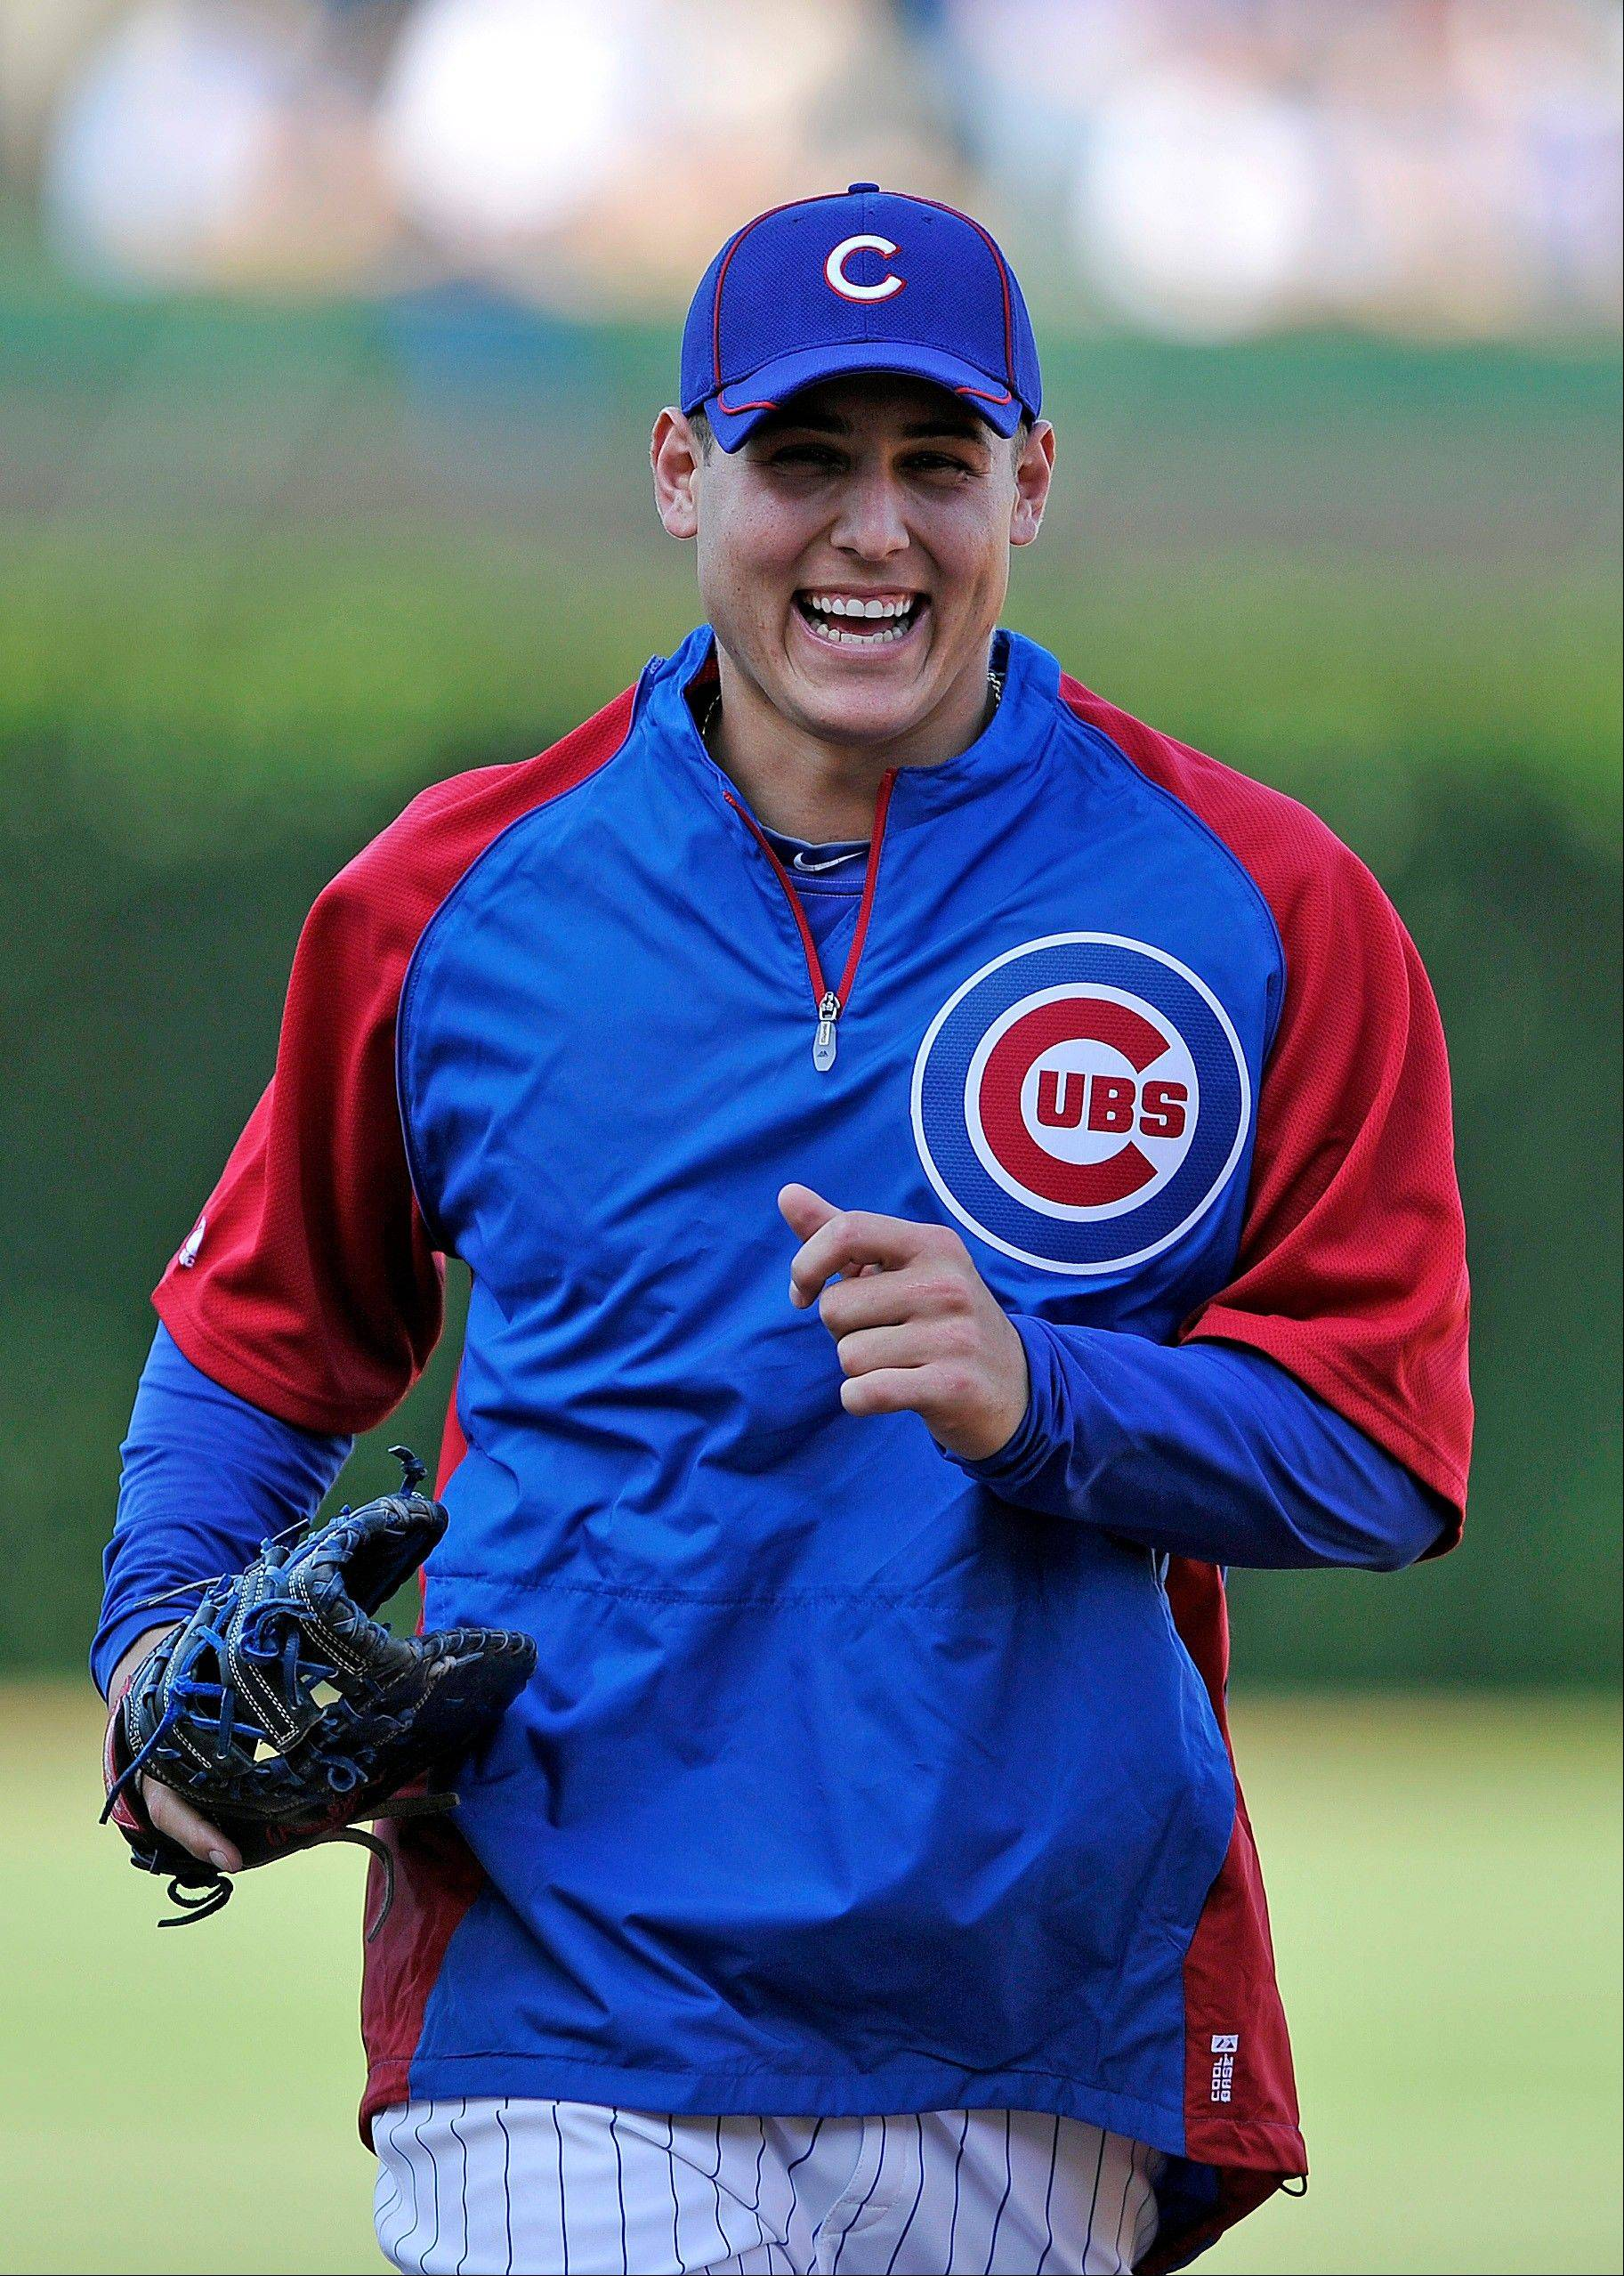 Cubs first baseman Anthony Rizzo runs off the field after batting practice Tuesday at Wrigley Field. The Cubs recalled Rizzo from Triple-A Iowa and put him in the No. 3 spot in the batting order for his Chicago debut against the New York Mets.